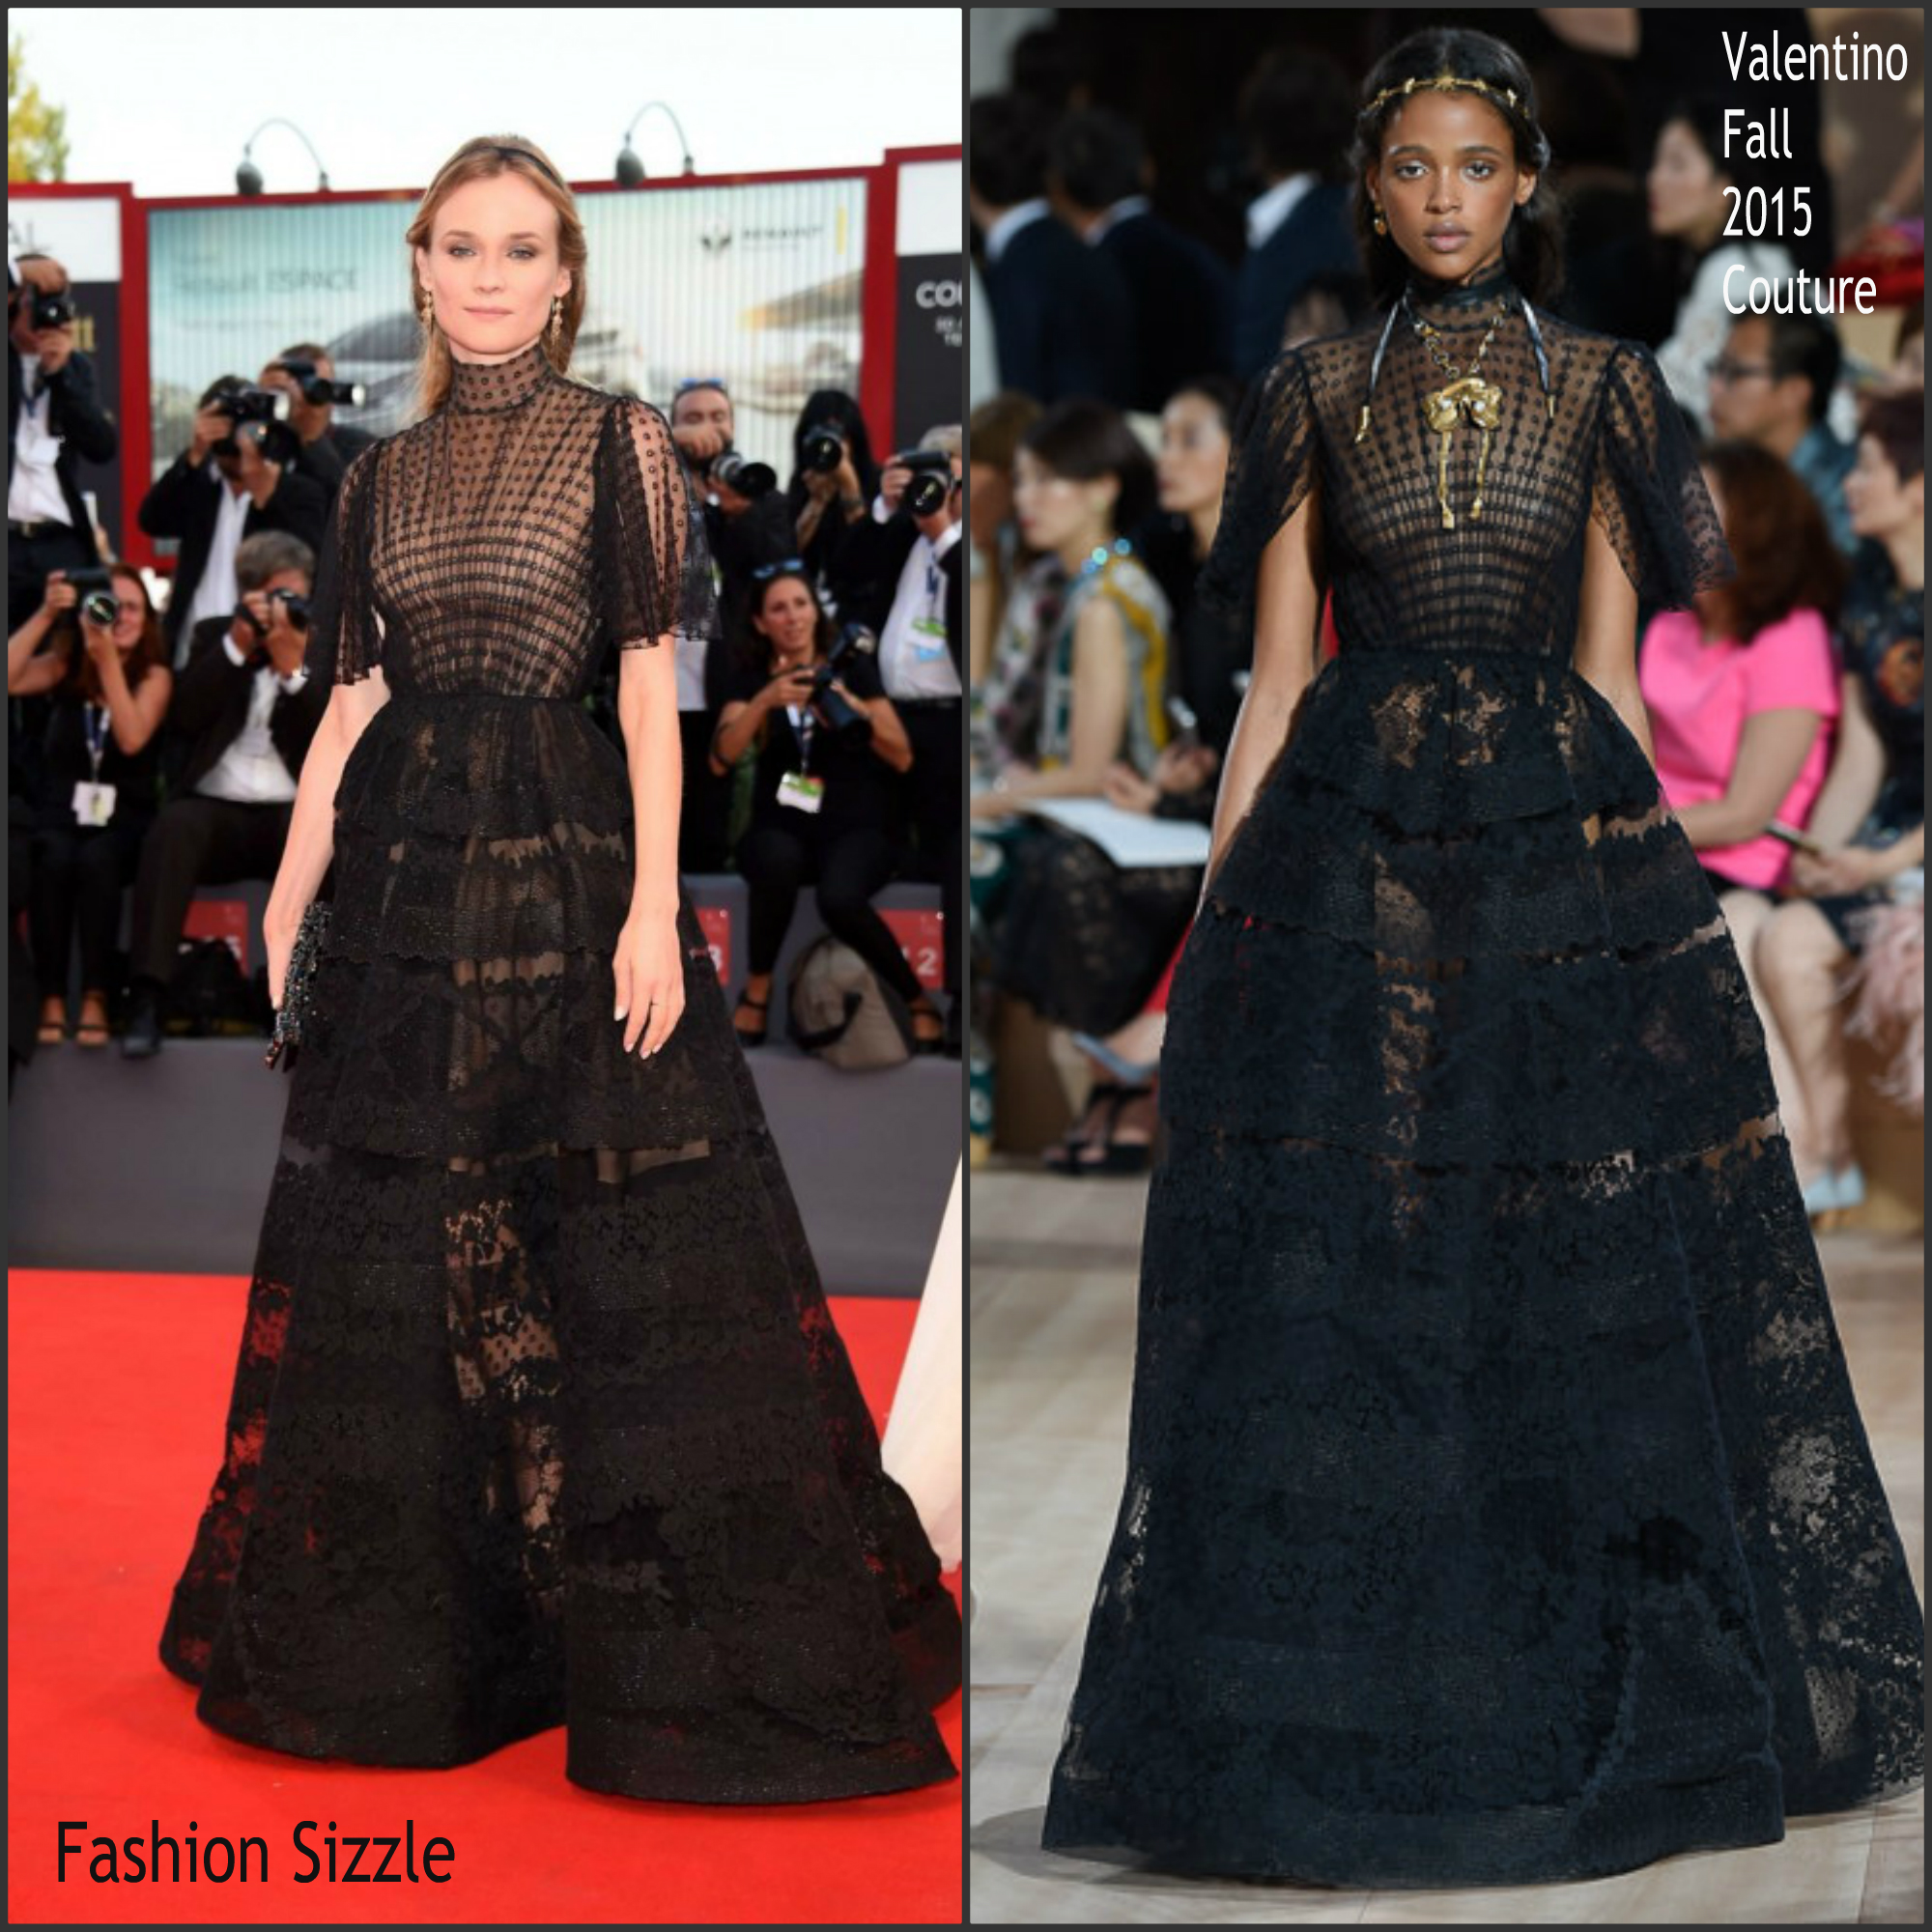 diane-kruger-in-valentino-couture-at-lao-pao-er-venice-film-festival-festival-premiere-closing-ceremony